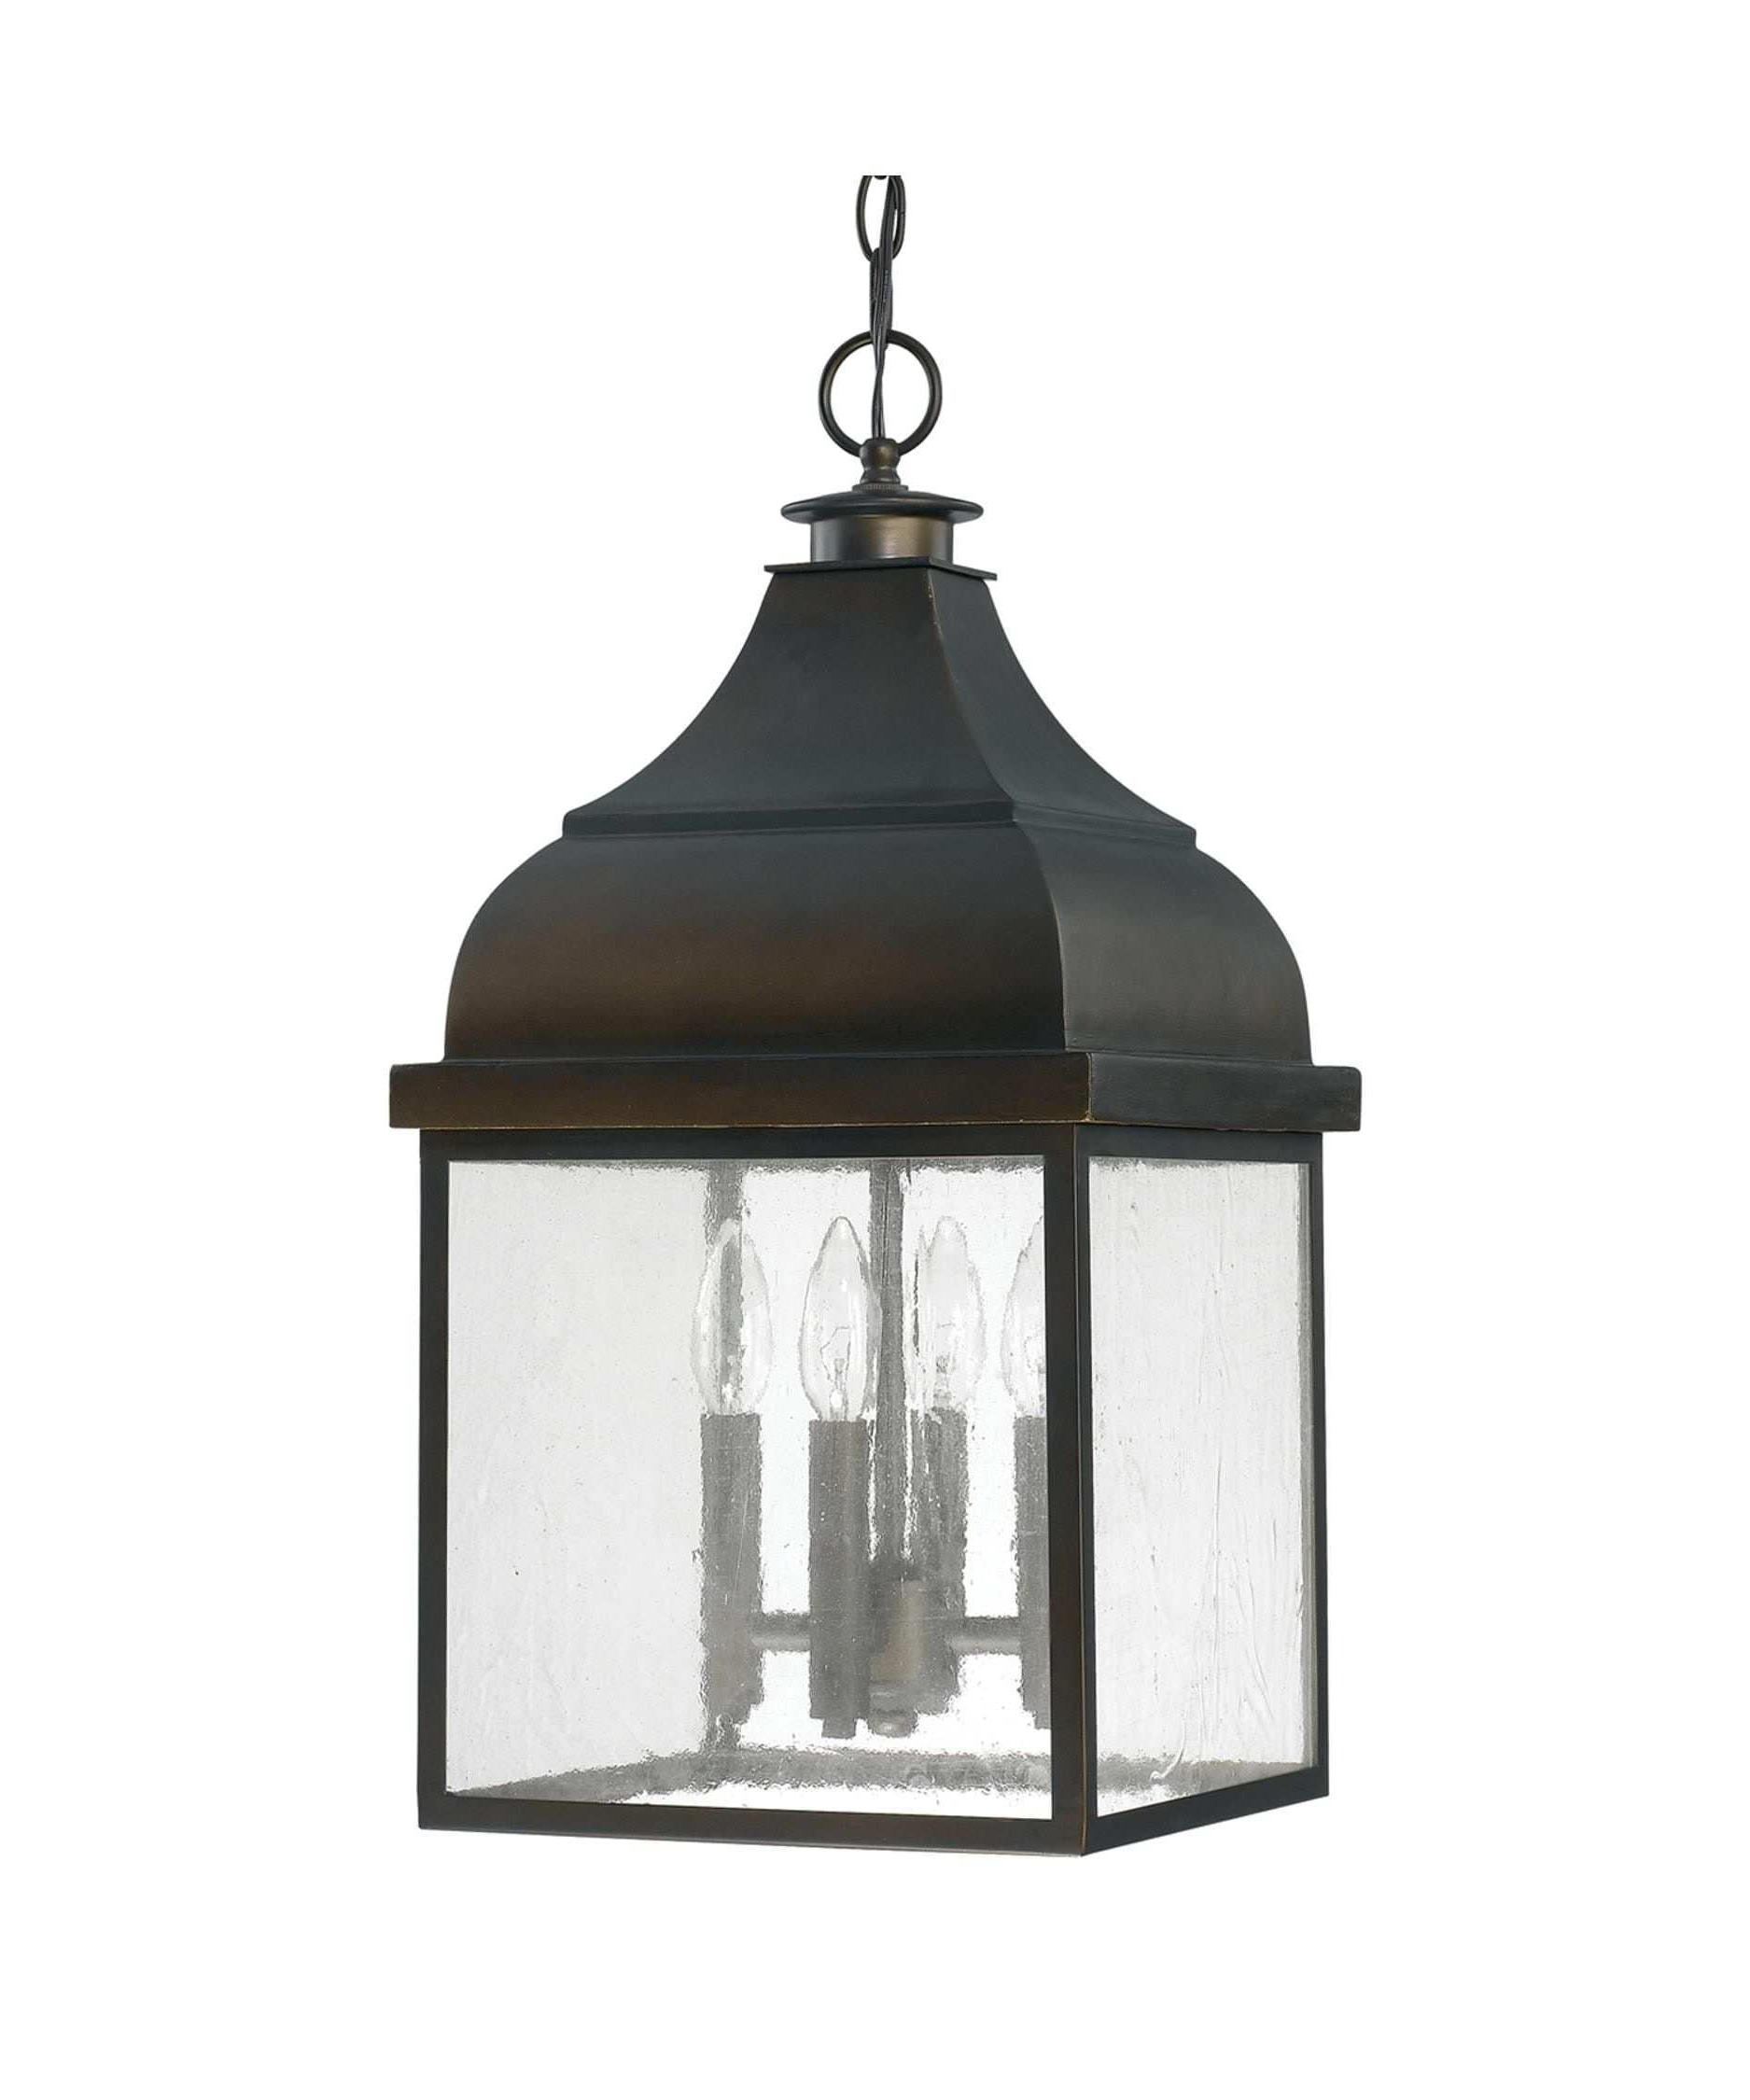 Wayfair Ceiling Light Fixtures Beautiful Outdoor Hanging Light Intended For Most Recently Released Wayfair Outdoor Hanging Lighting Fixtures (View 15 of 20)